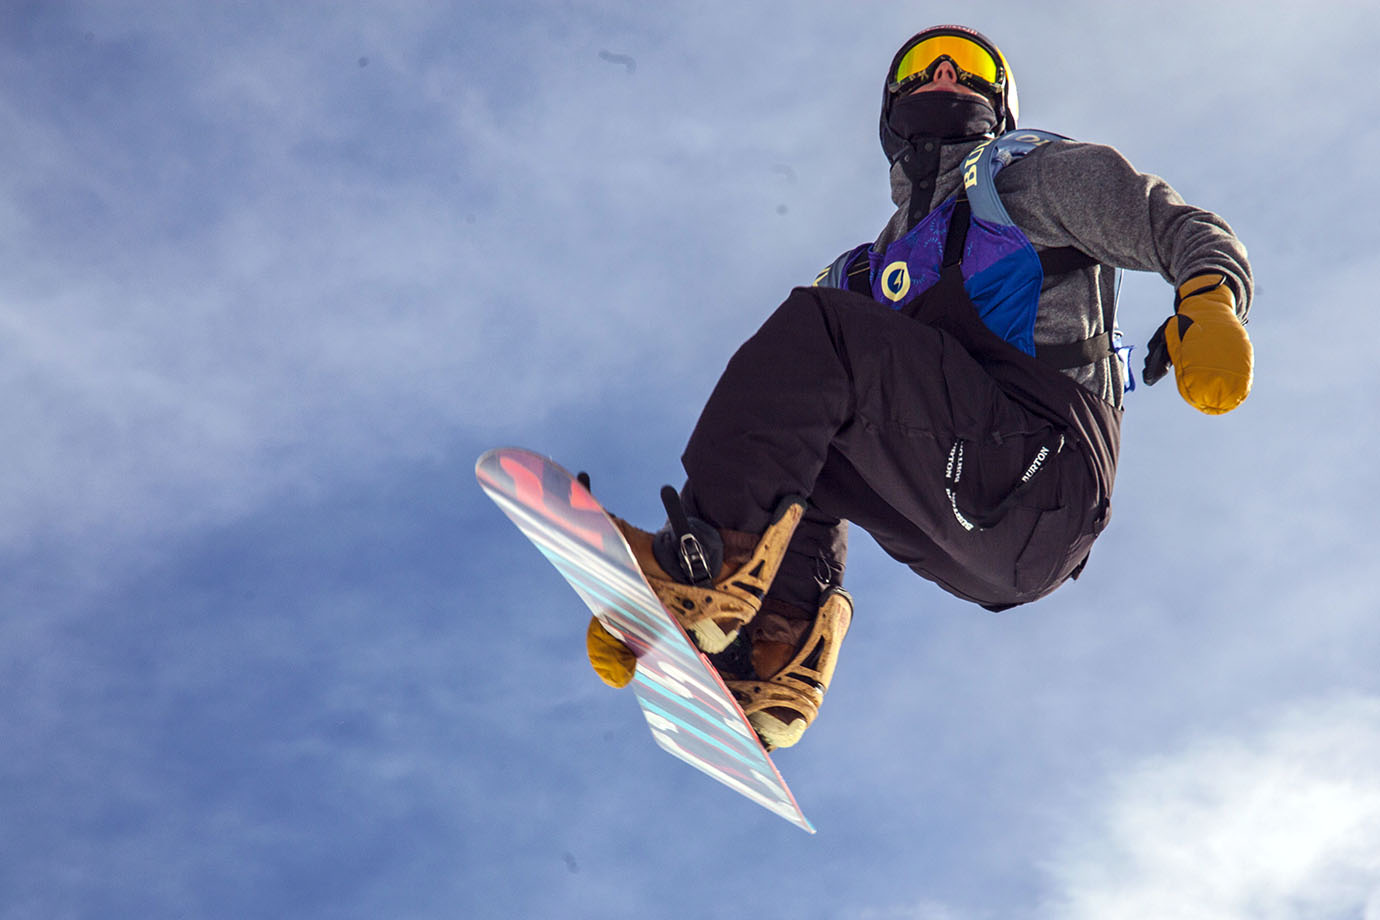 Ben Ferguson soars through the air on his third and final run of the Superpipe final. After falling deep into his first two runs, the man known as Ben Ferg executes his third to perfection, earning him the second spot.